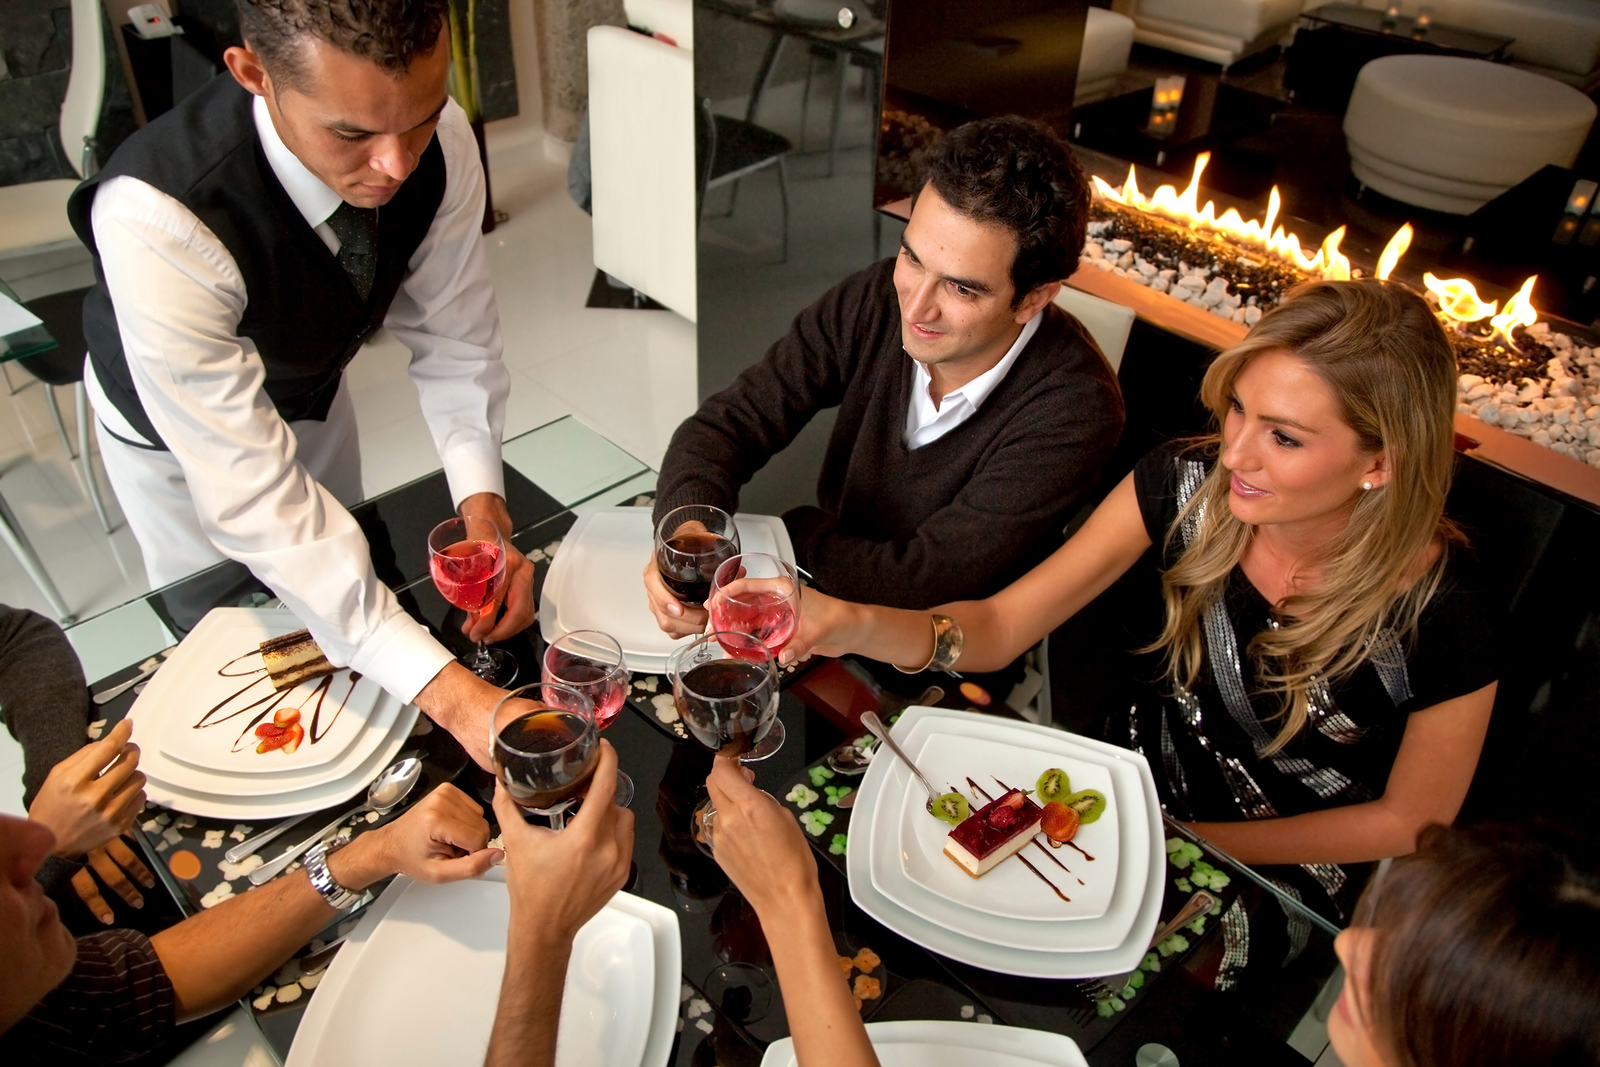 Restaurant Background Music Tips - How To Set The Mood For Customers